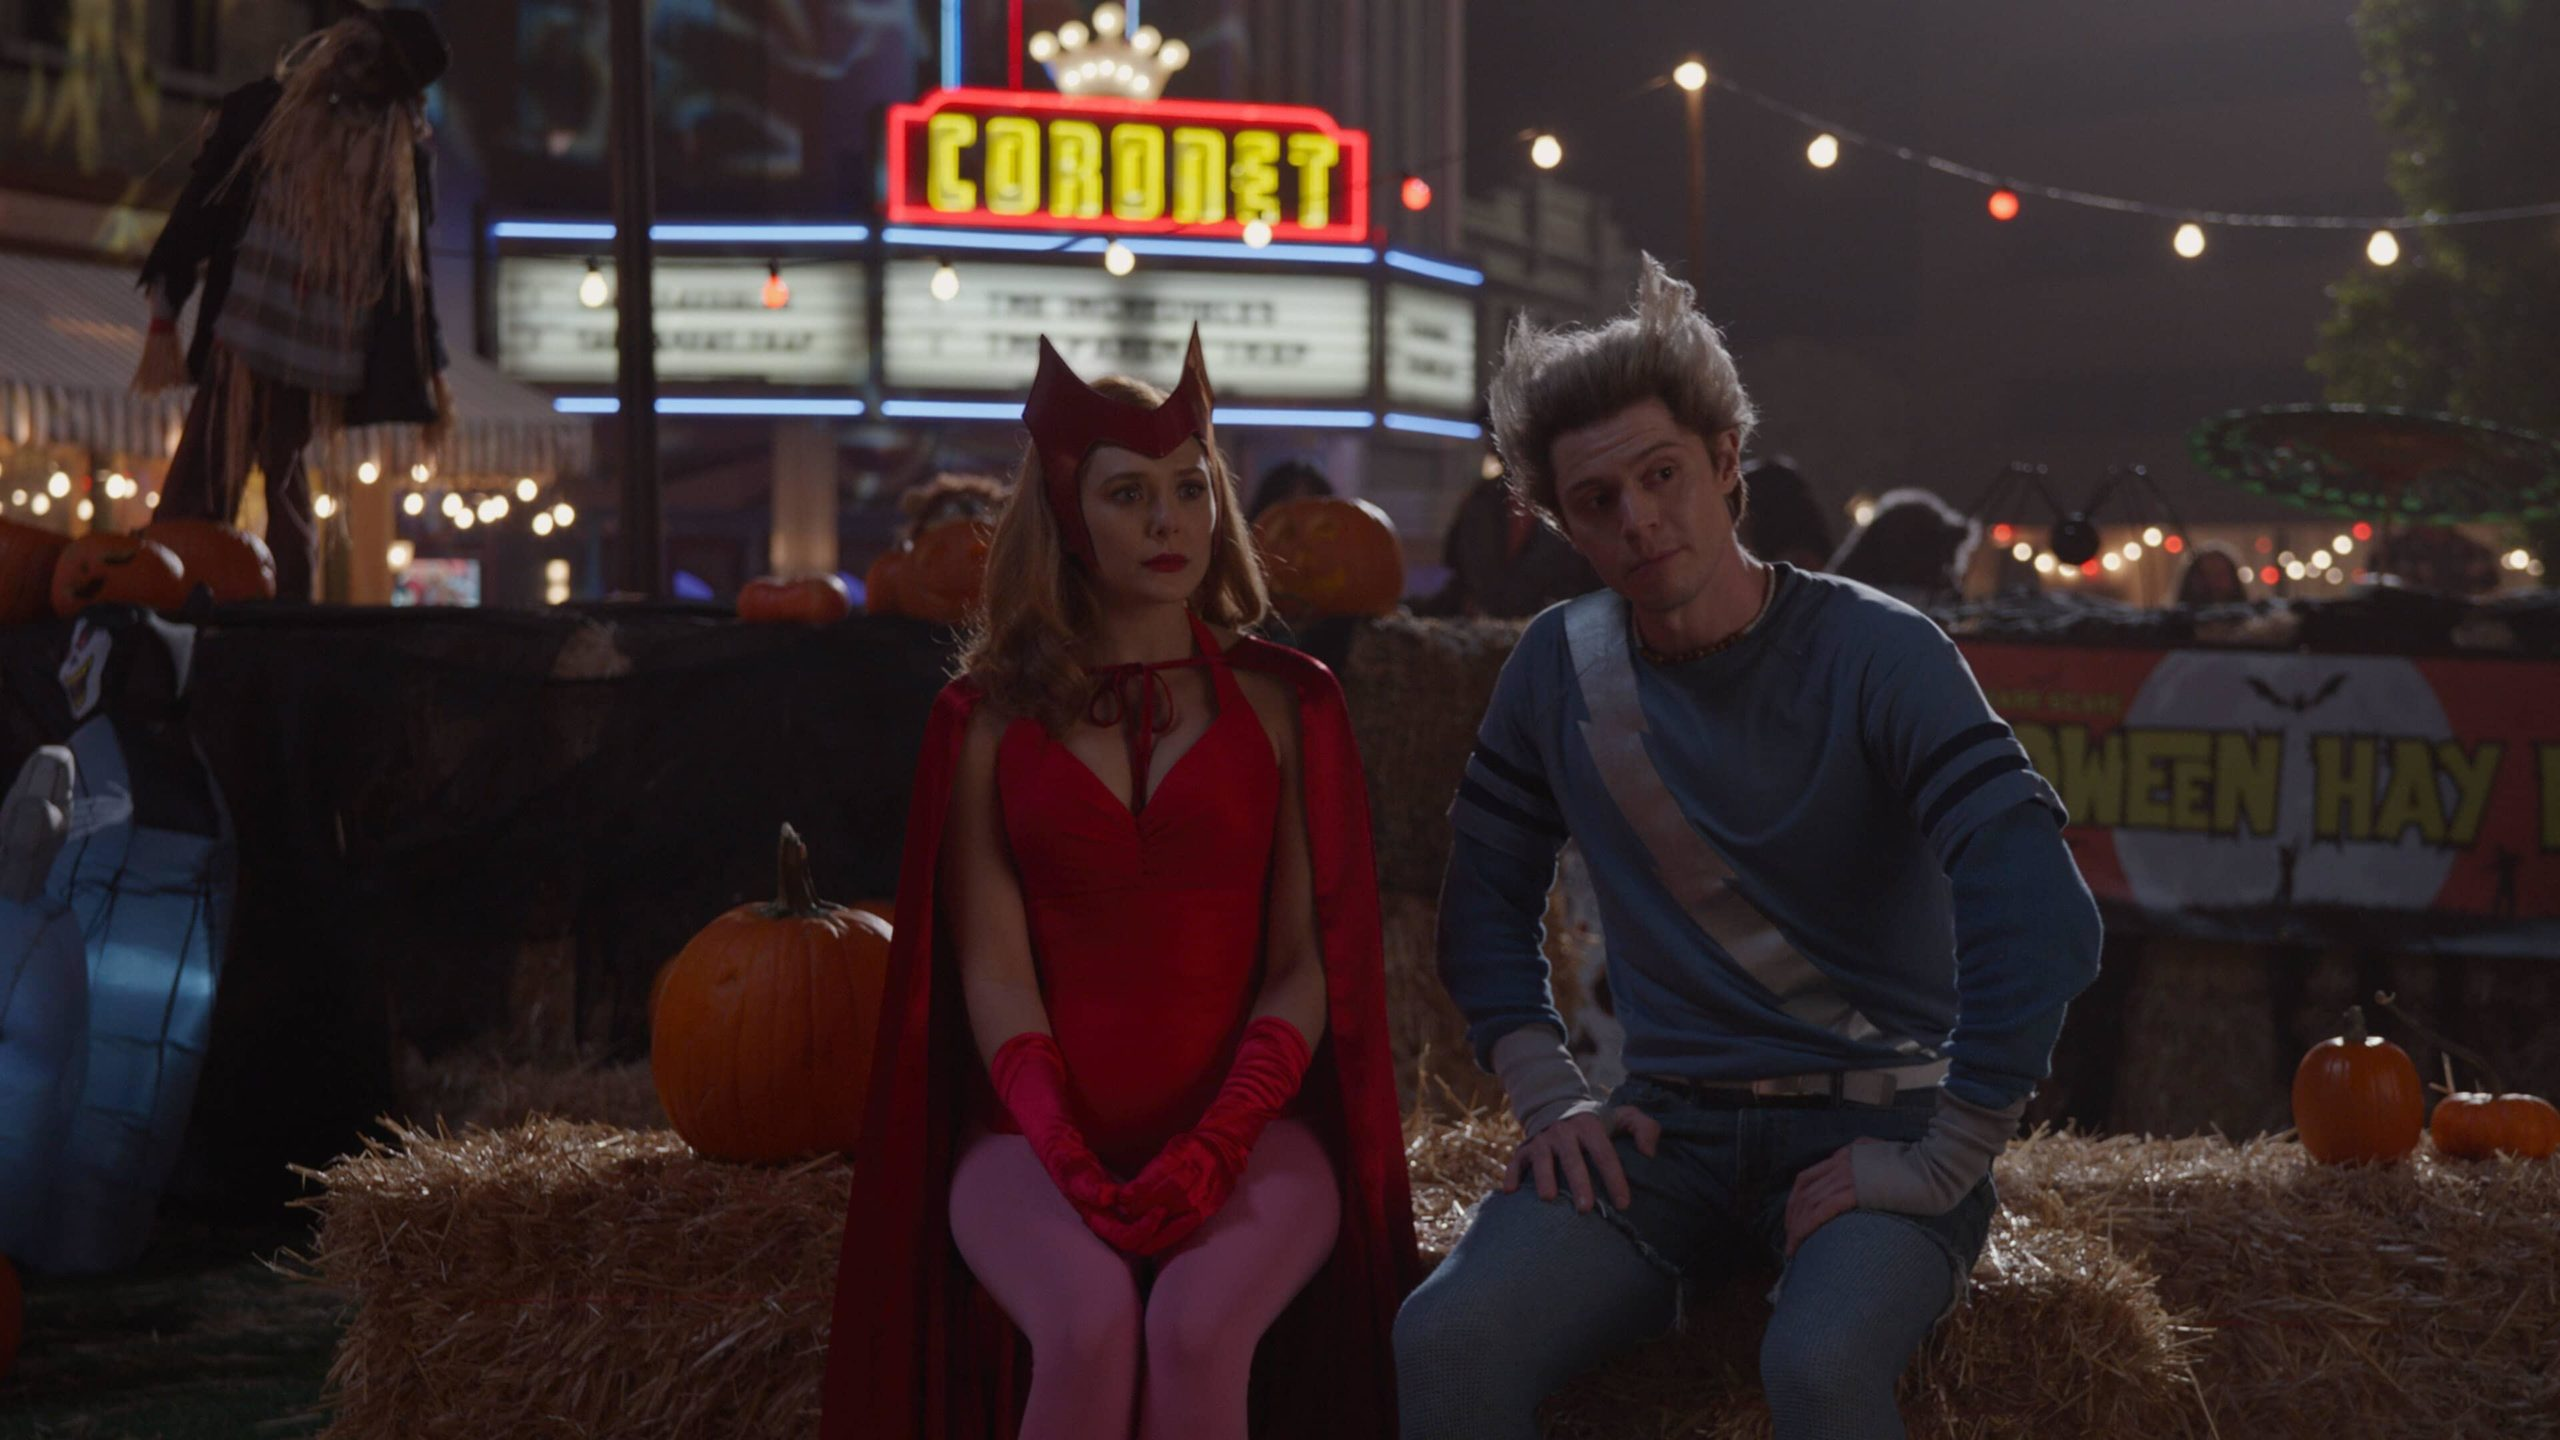 Elizabeth Olsen dressed as classic Scarlet Witch and Evan Peters dressed as classic Quicksilver